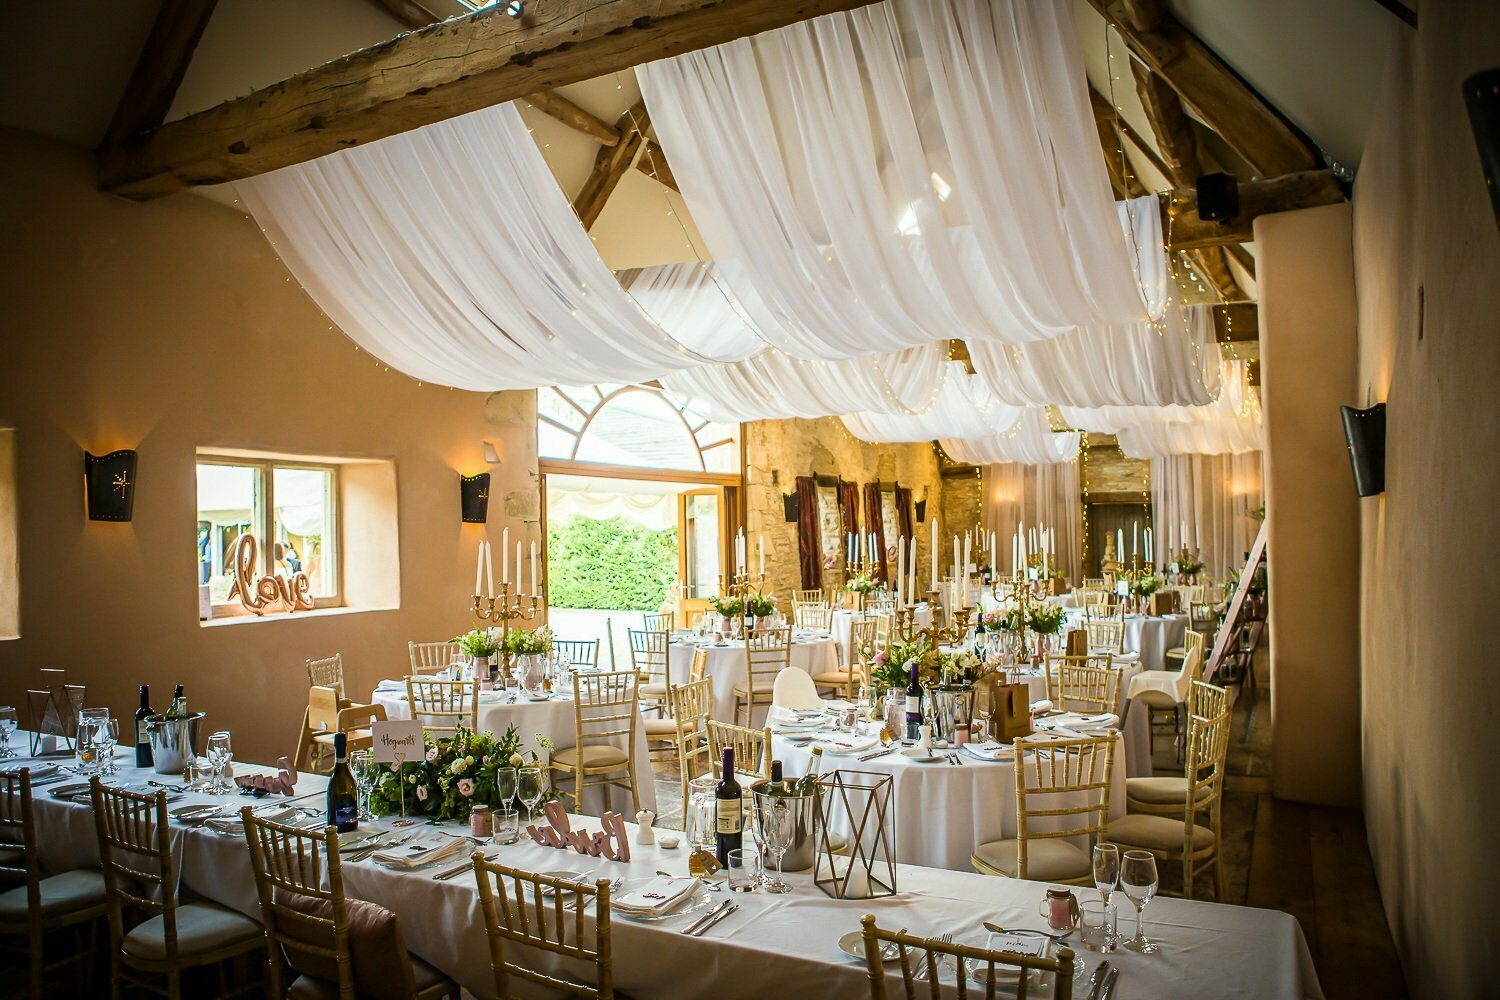 Oxleaze Barn Wedding LT 10